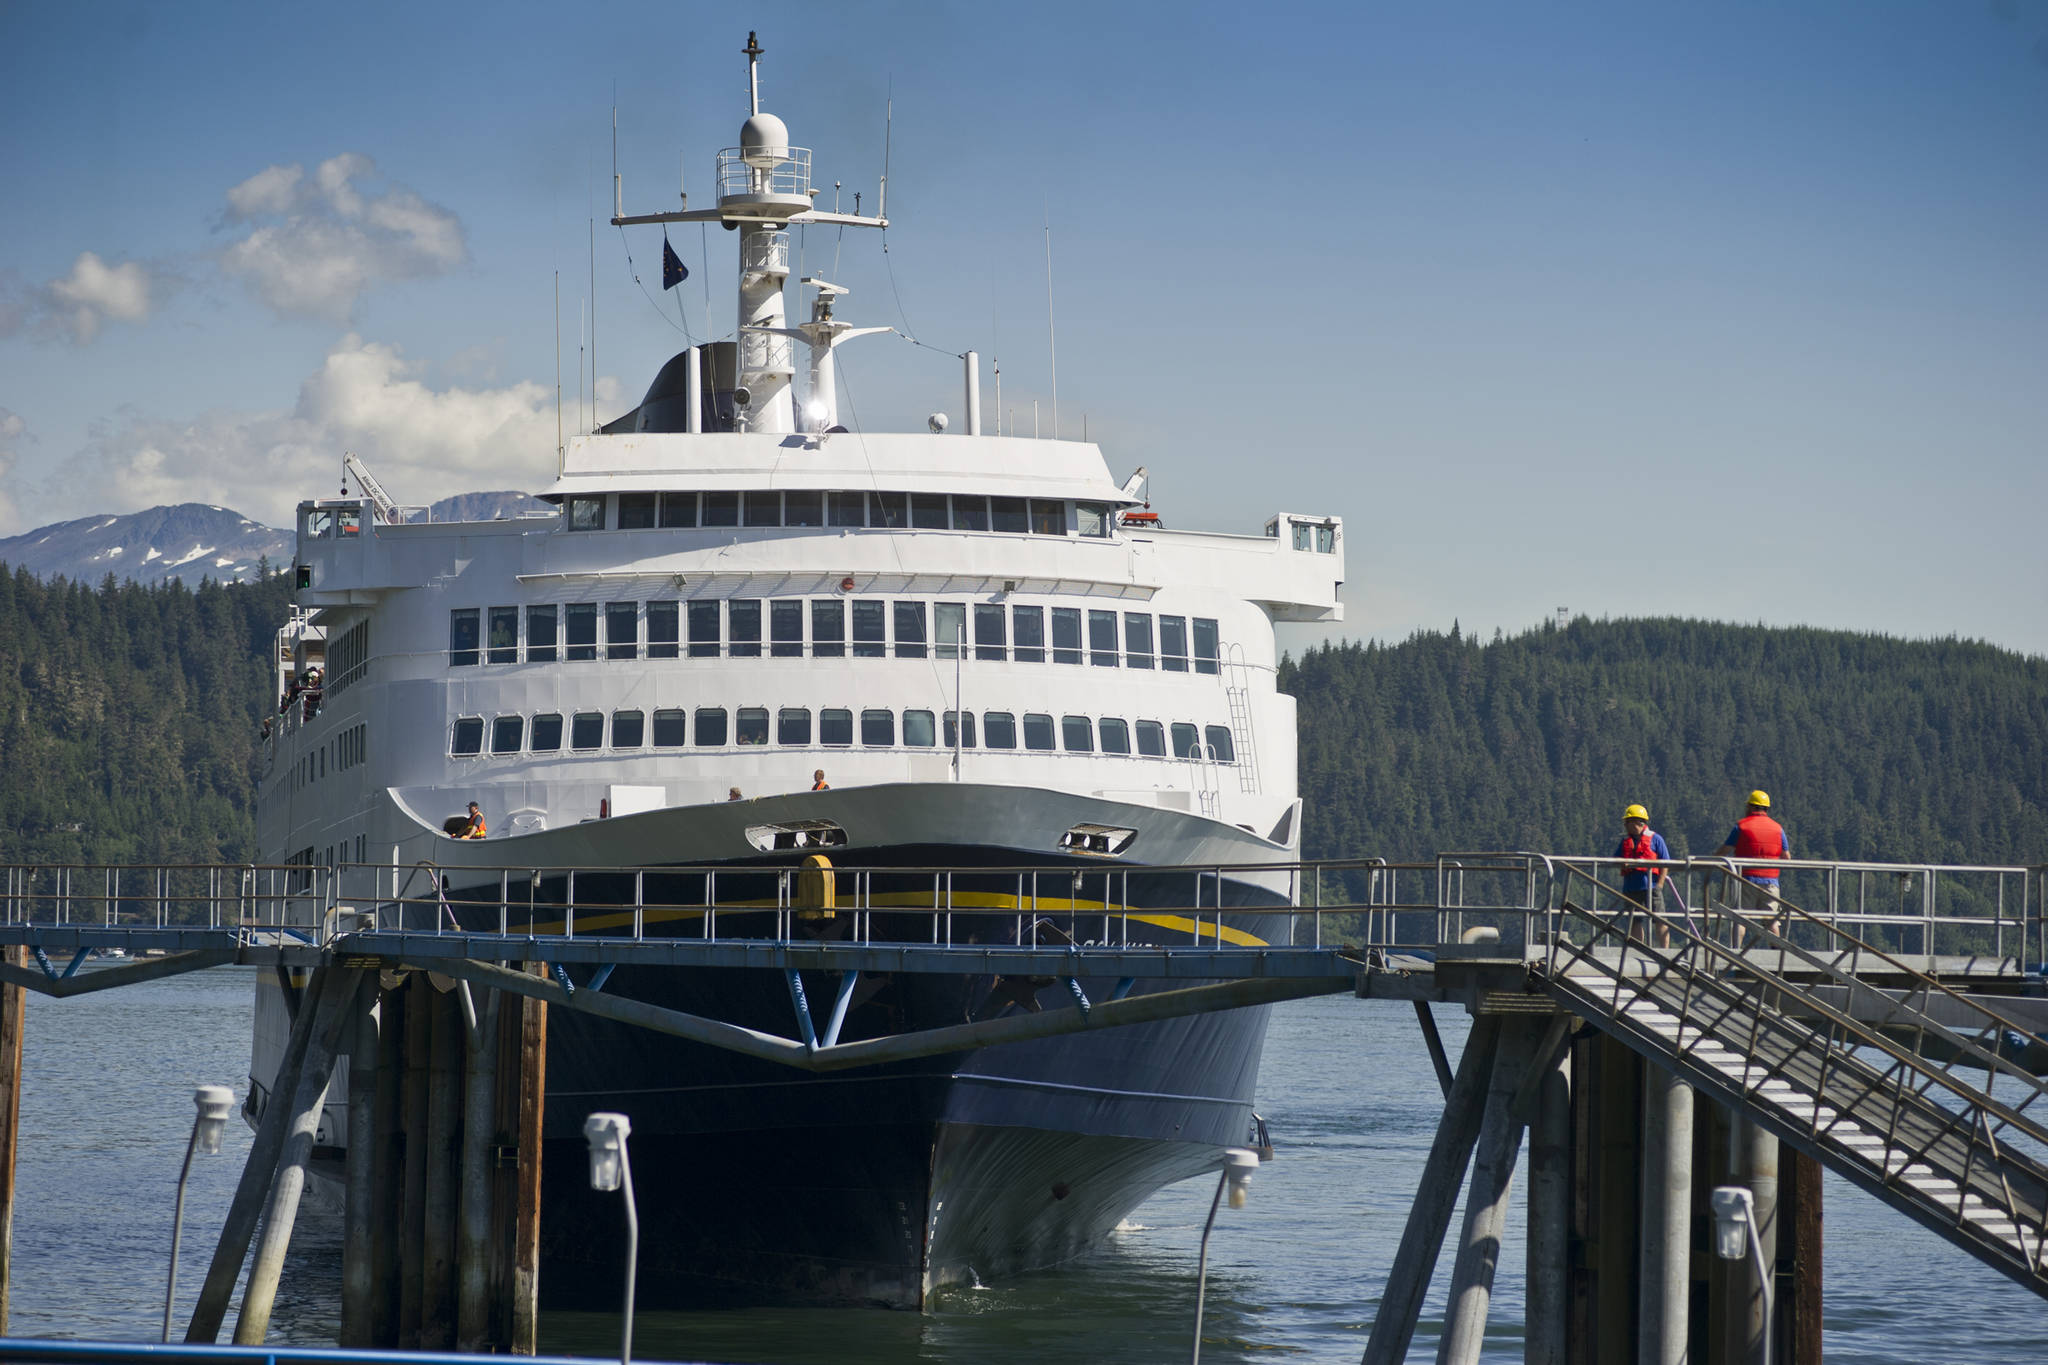 Opinion: Why the Alaska-class ferries aren't ready